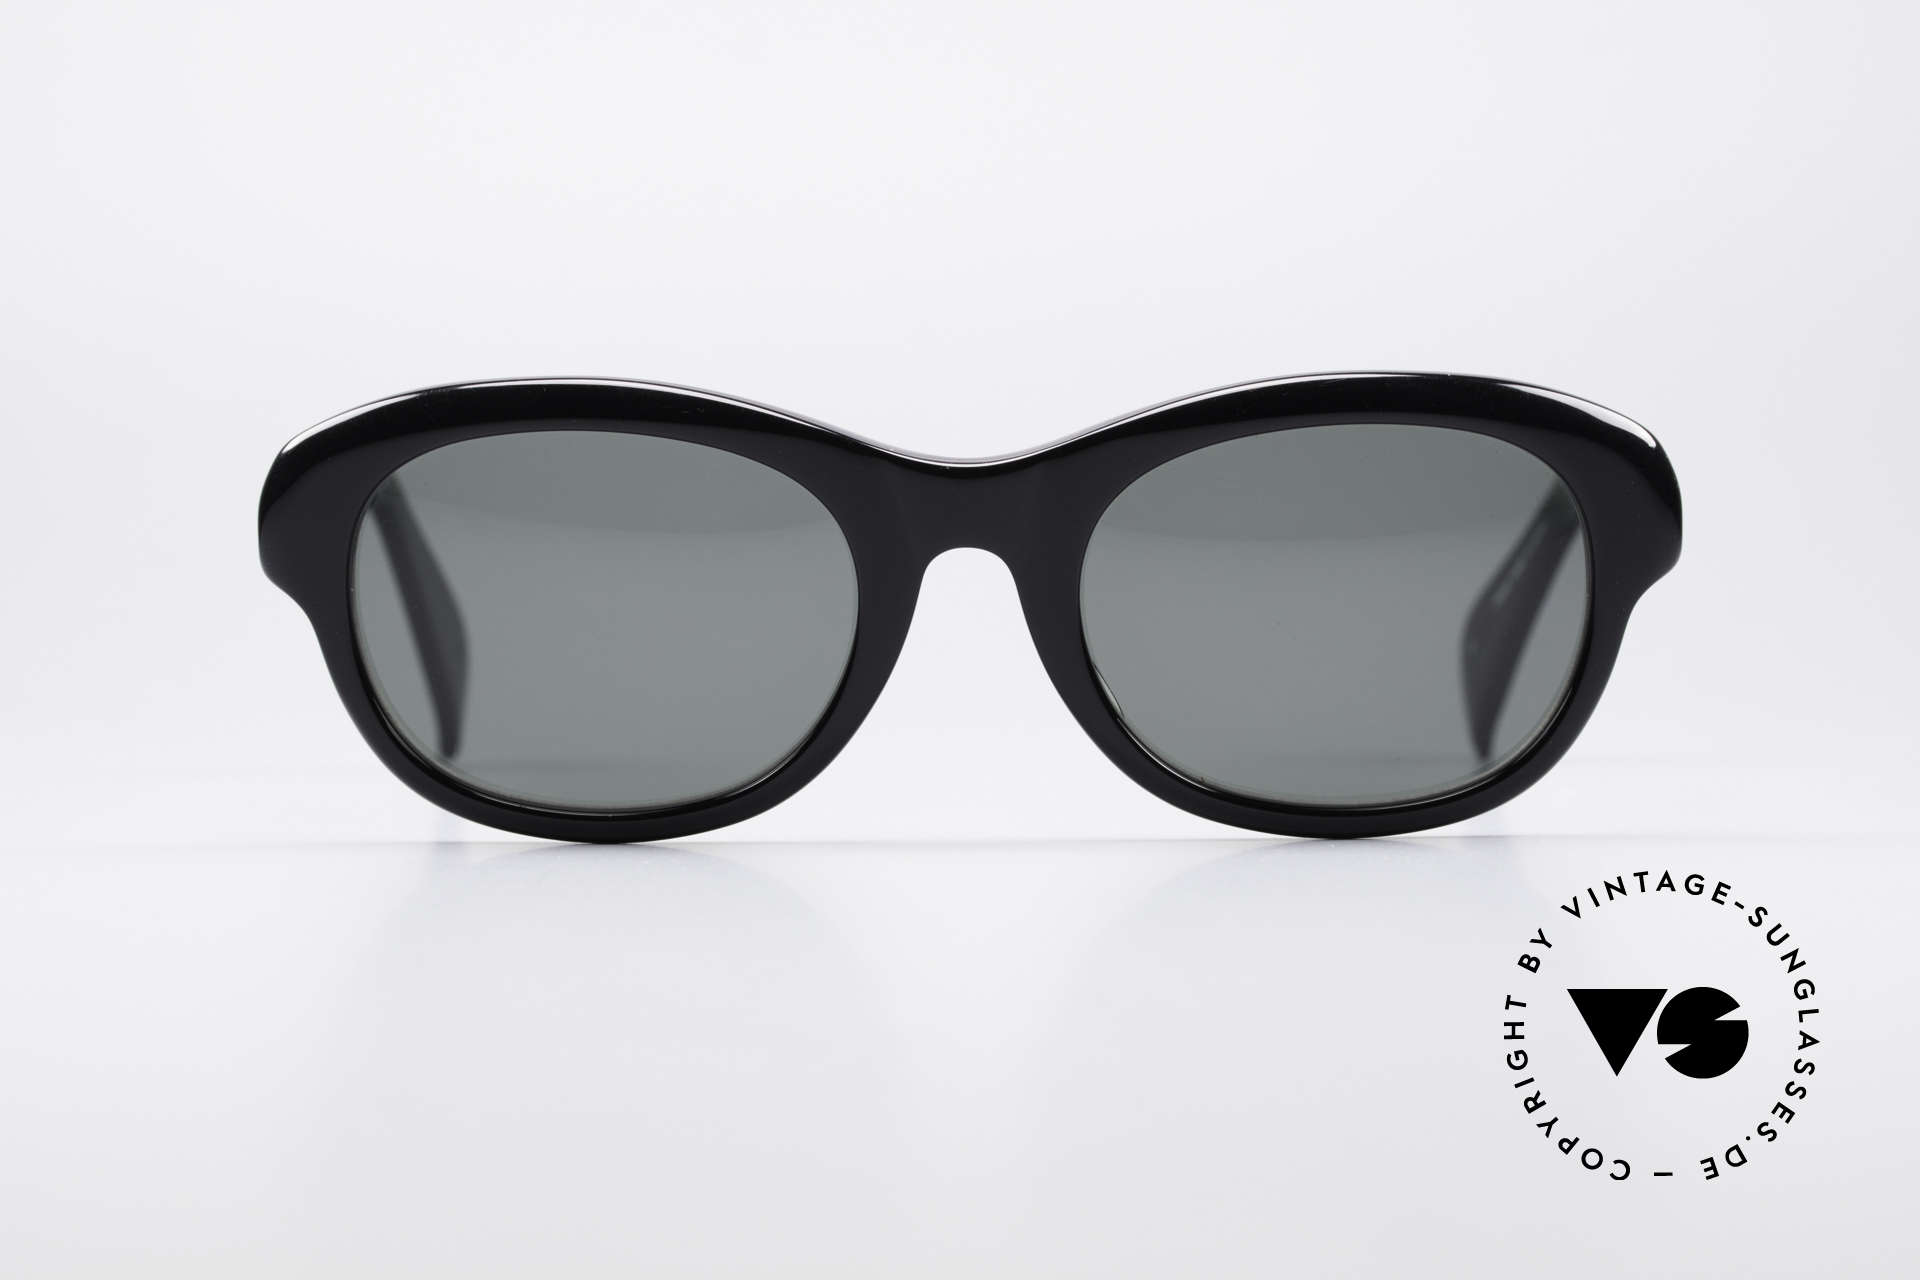 Jean Paul Gaultier 56-2071 No Retro True Vintage Specs, brilliant combination of materials; high-end quality, Made for Women